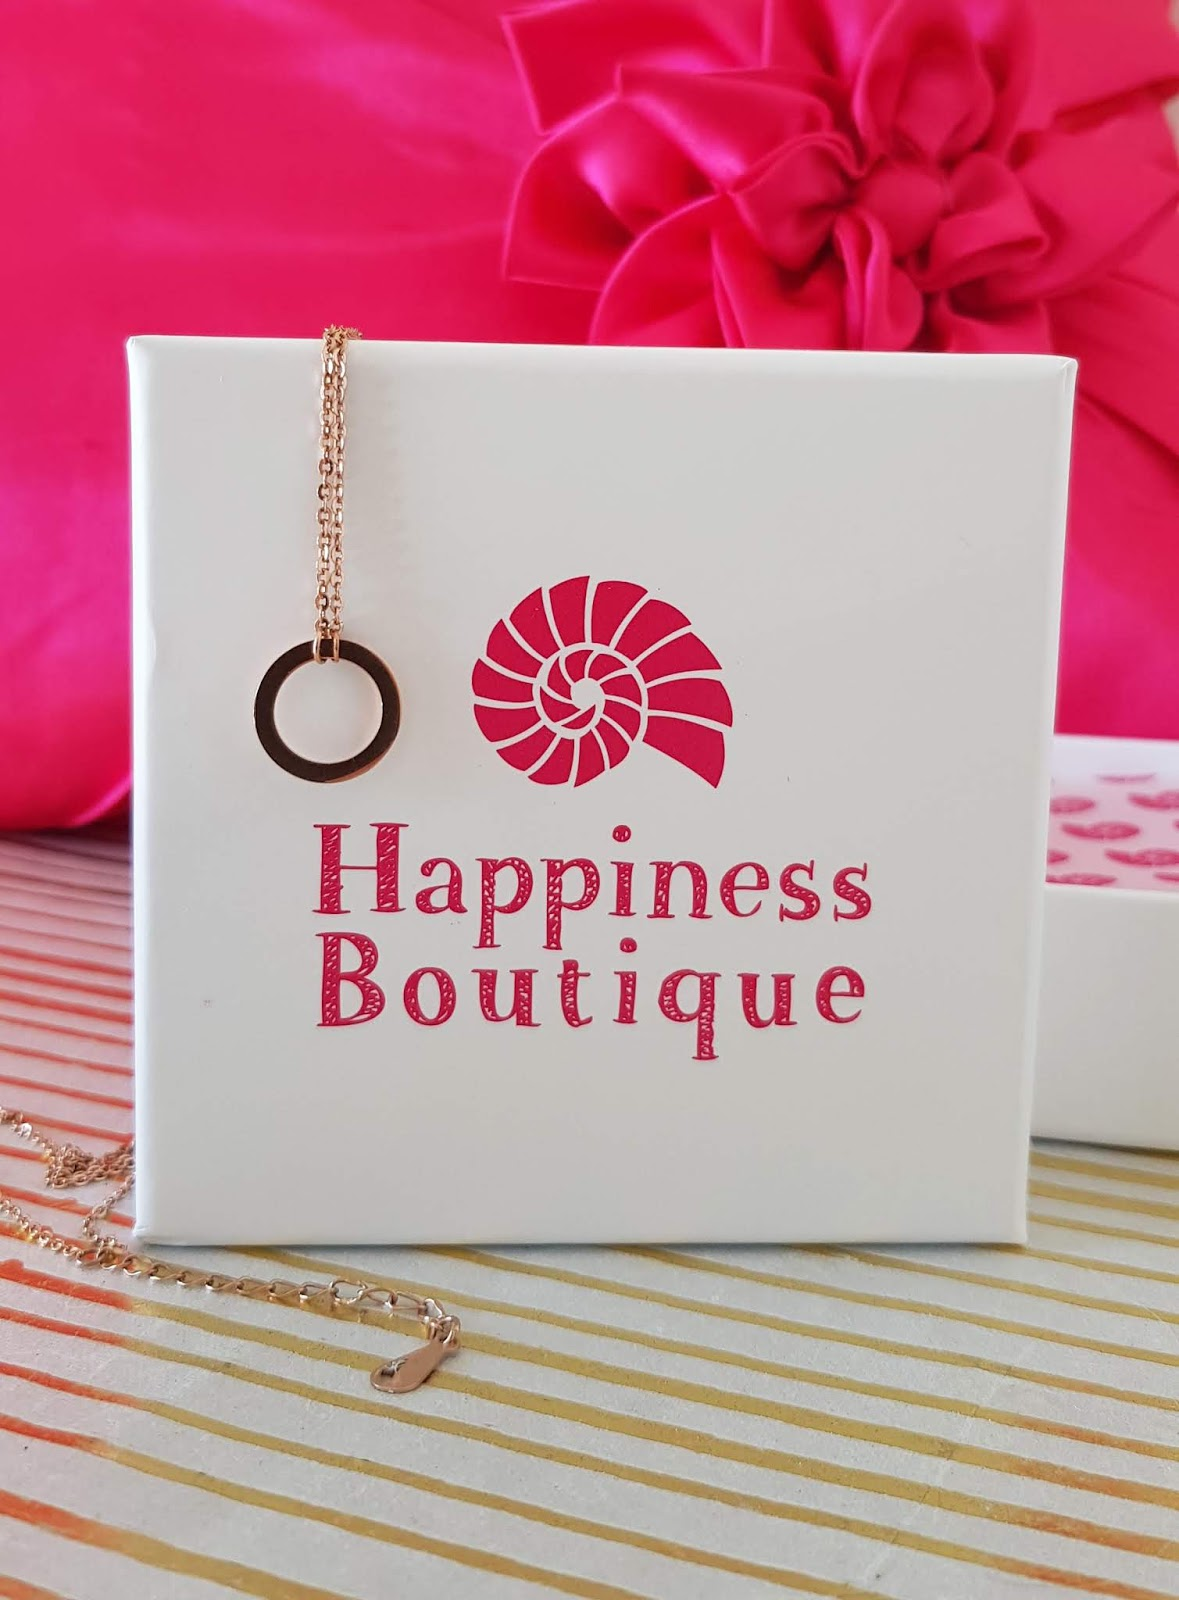 Image showing a jewellery box and necklaces from Happiness Boutique